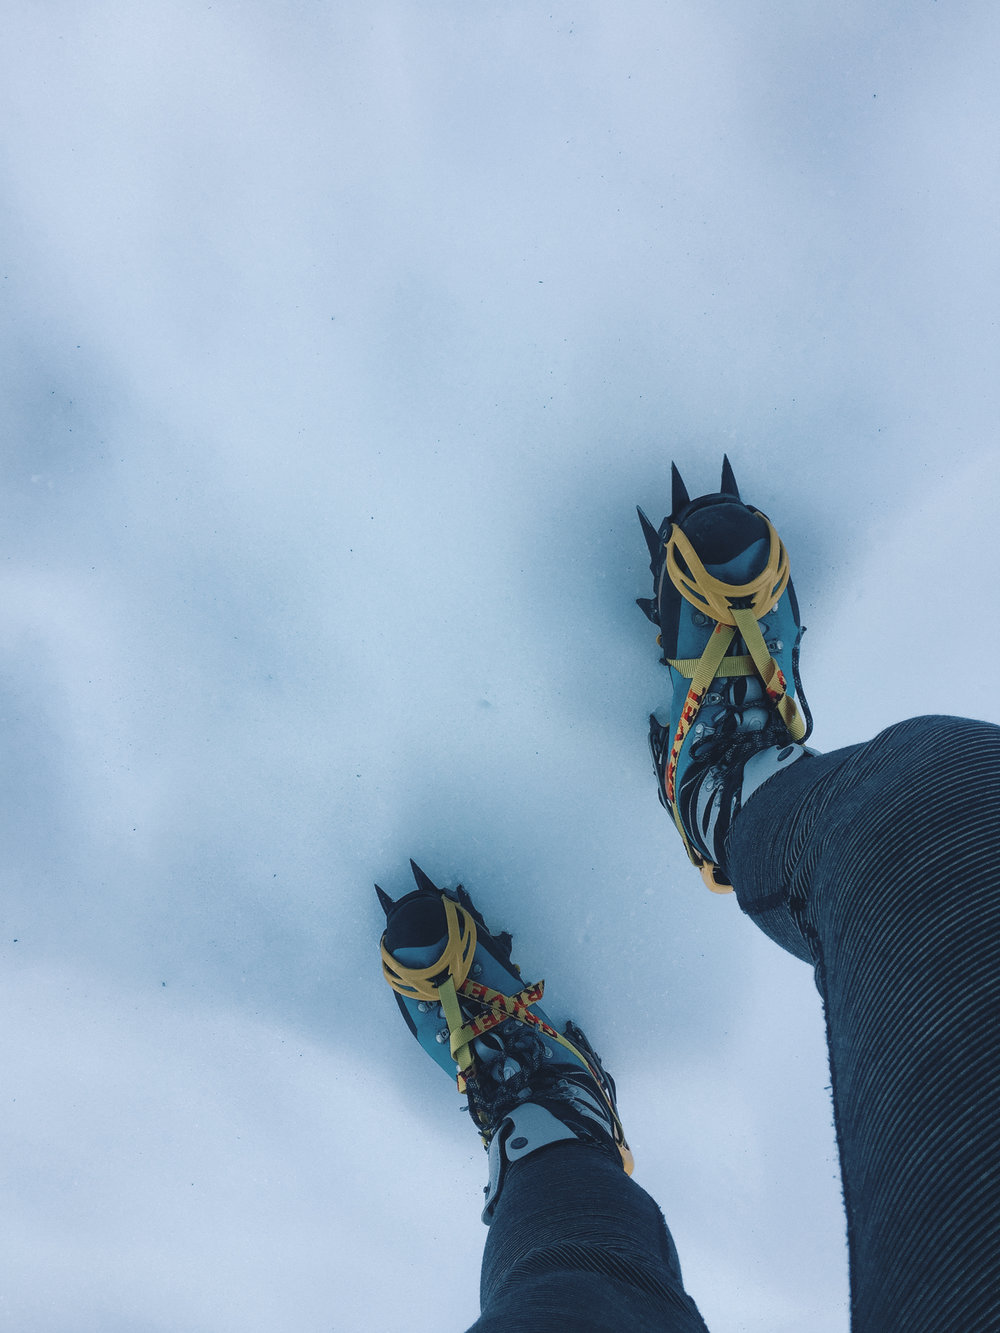 Finally got to use my crampons for a good purpose.